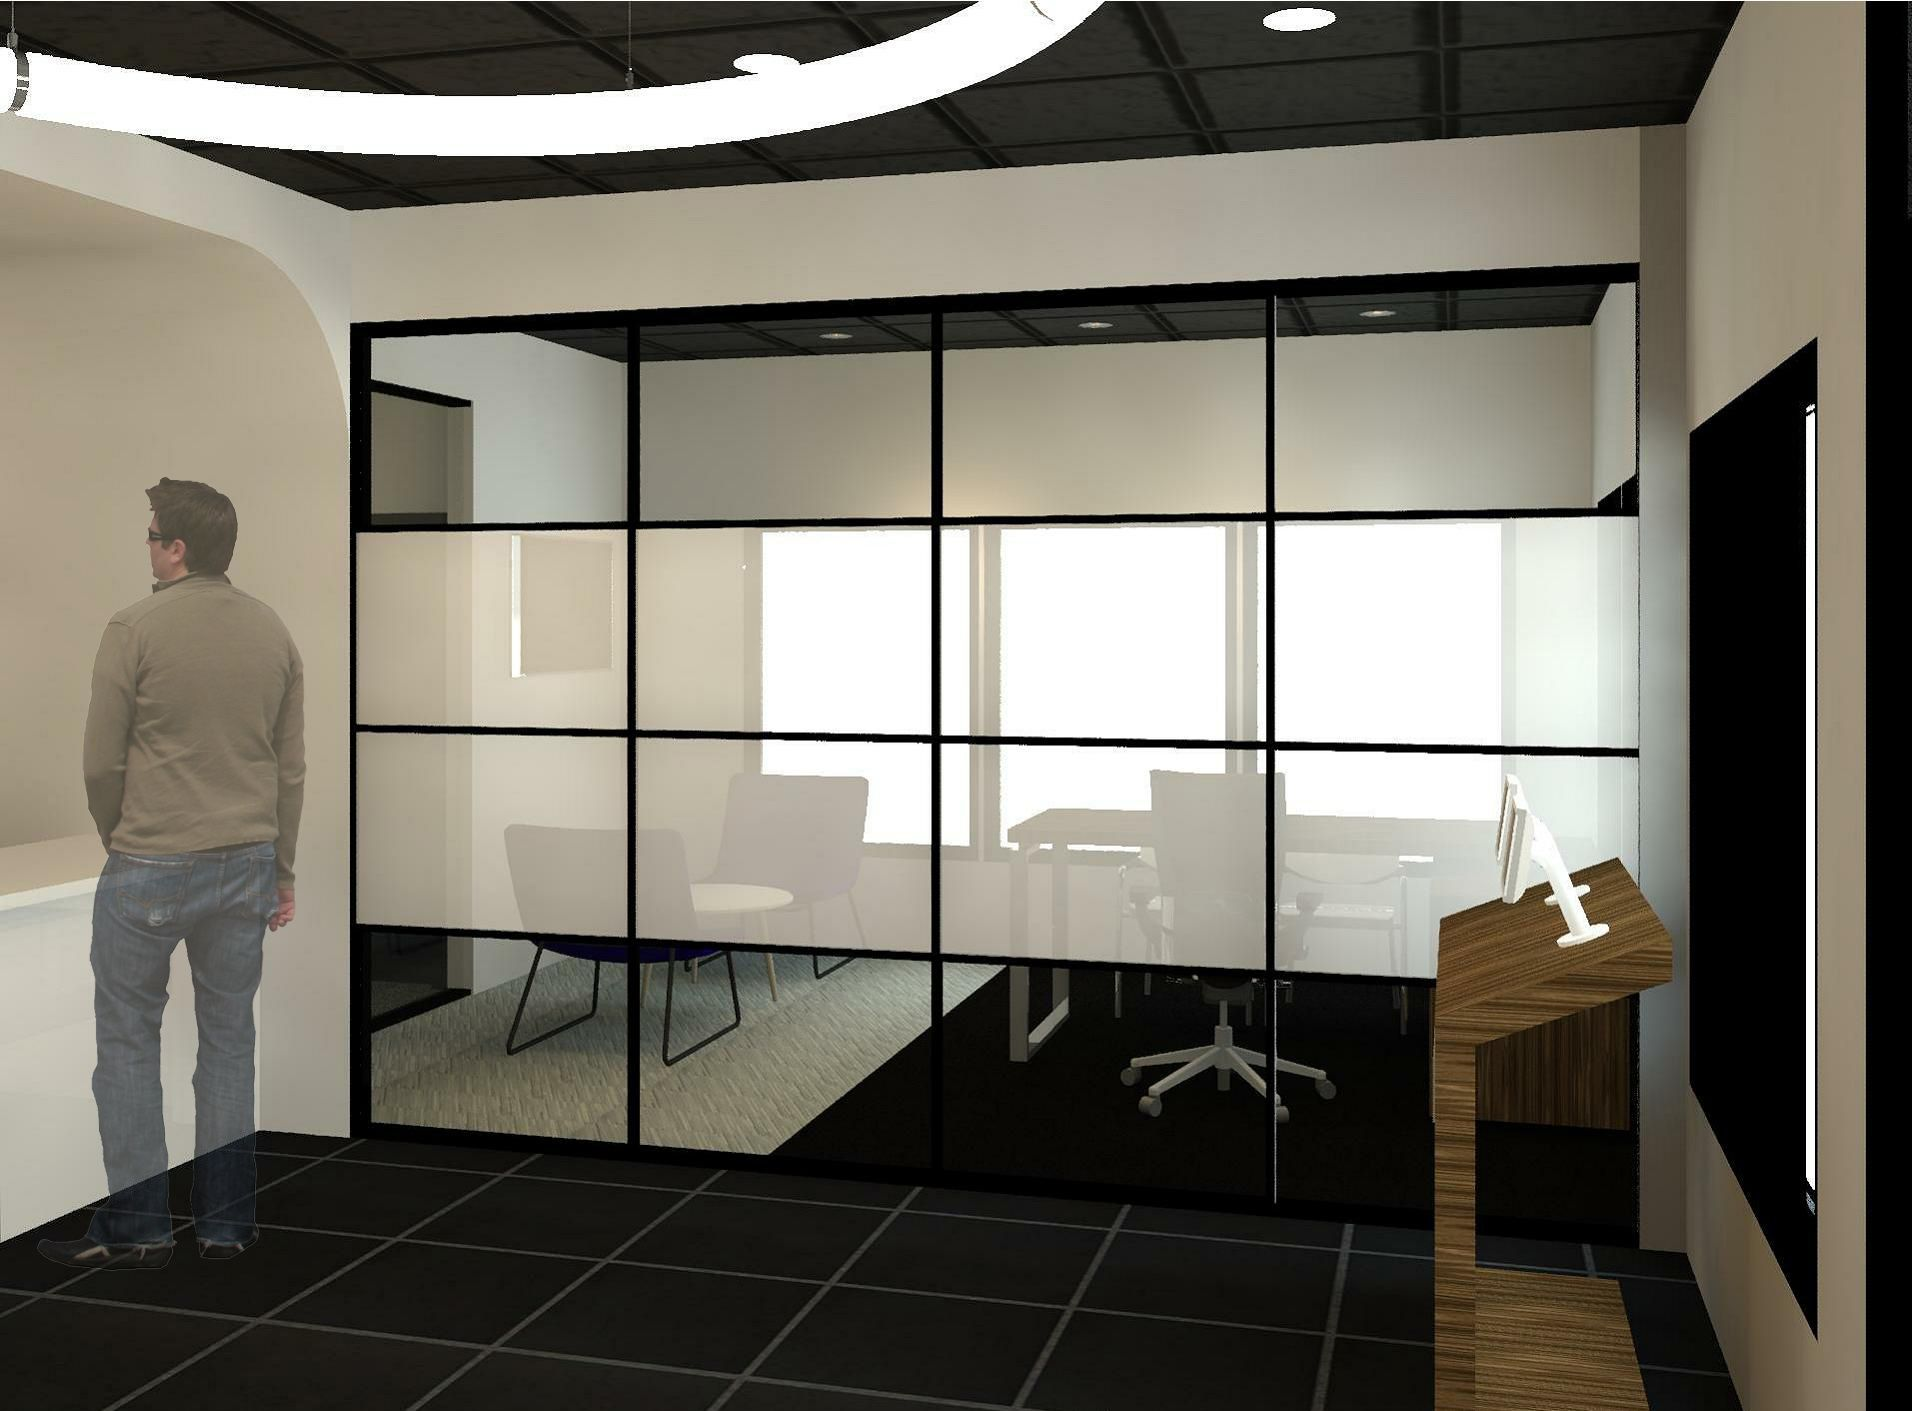 Car Service Center Interior Design And Renderings Hospital Interior Design Interior Design Interior Design Firms